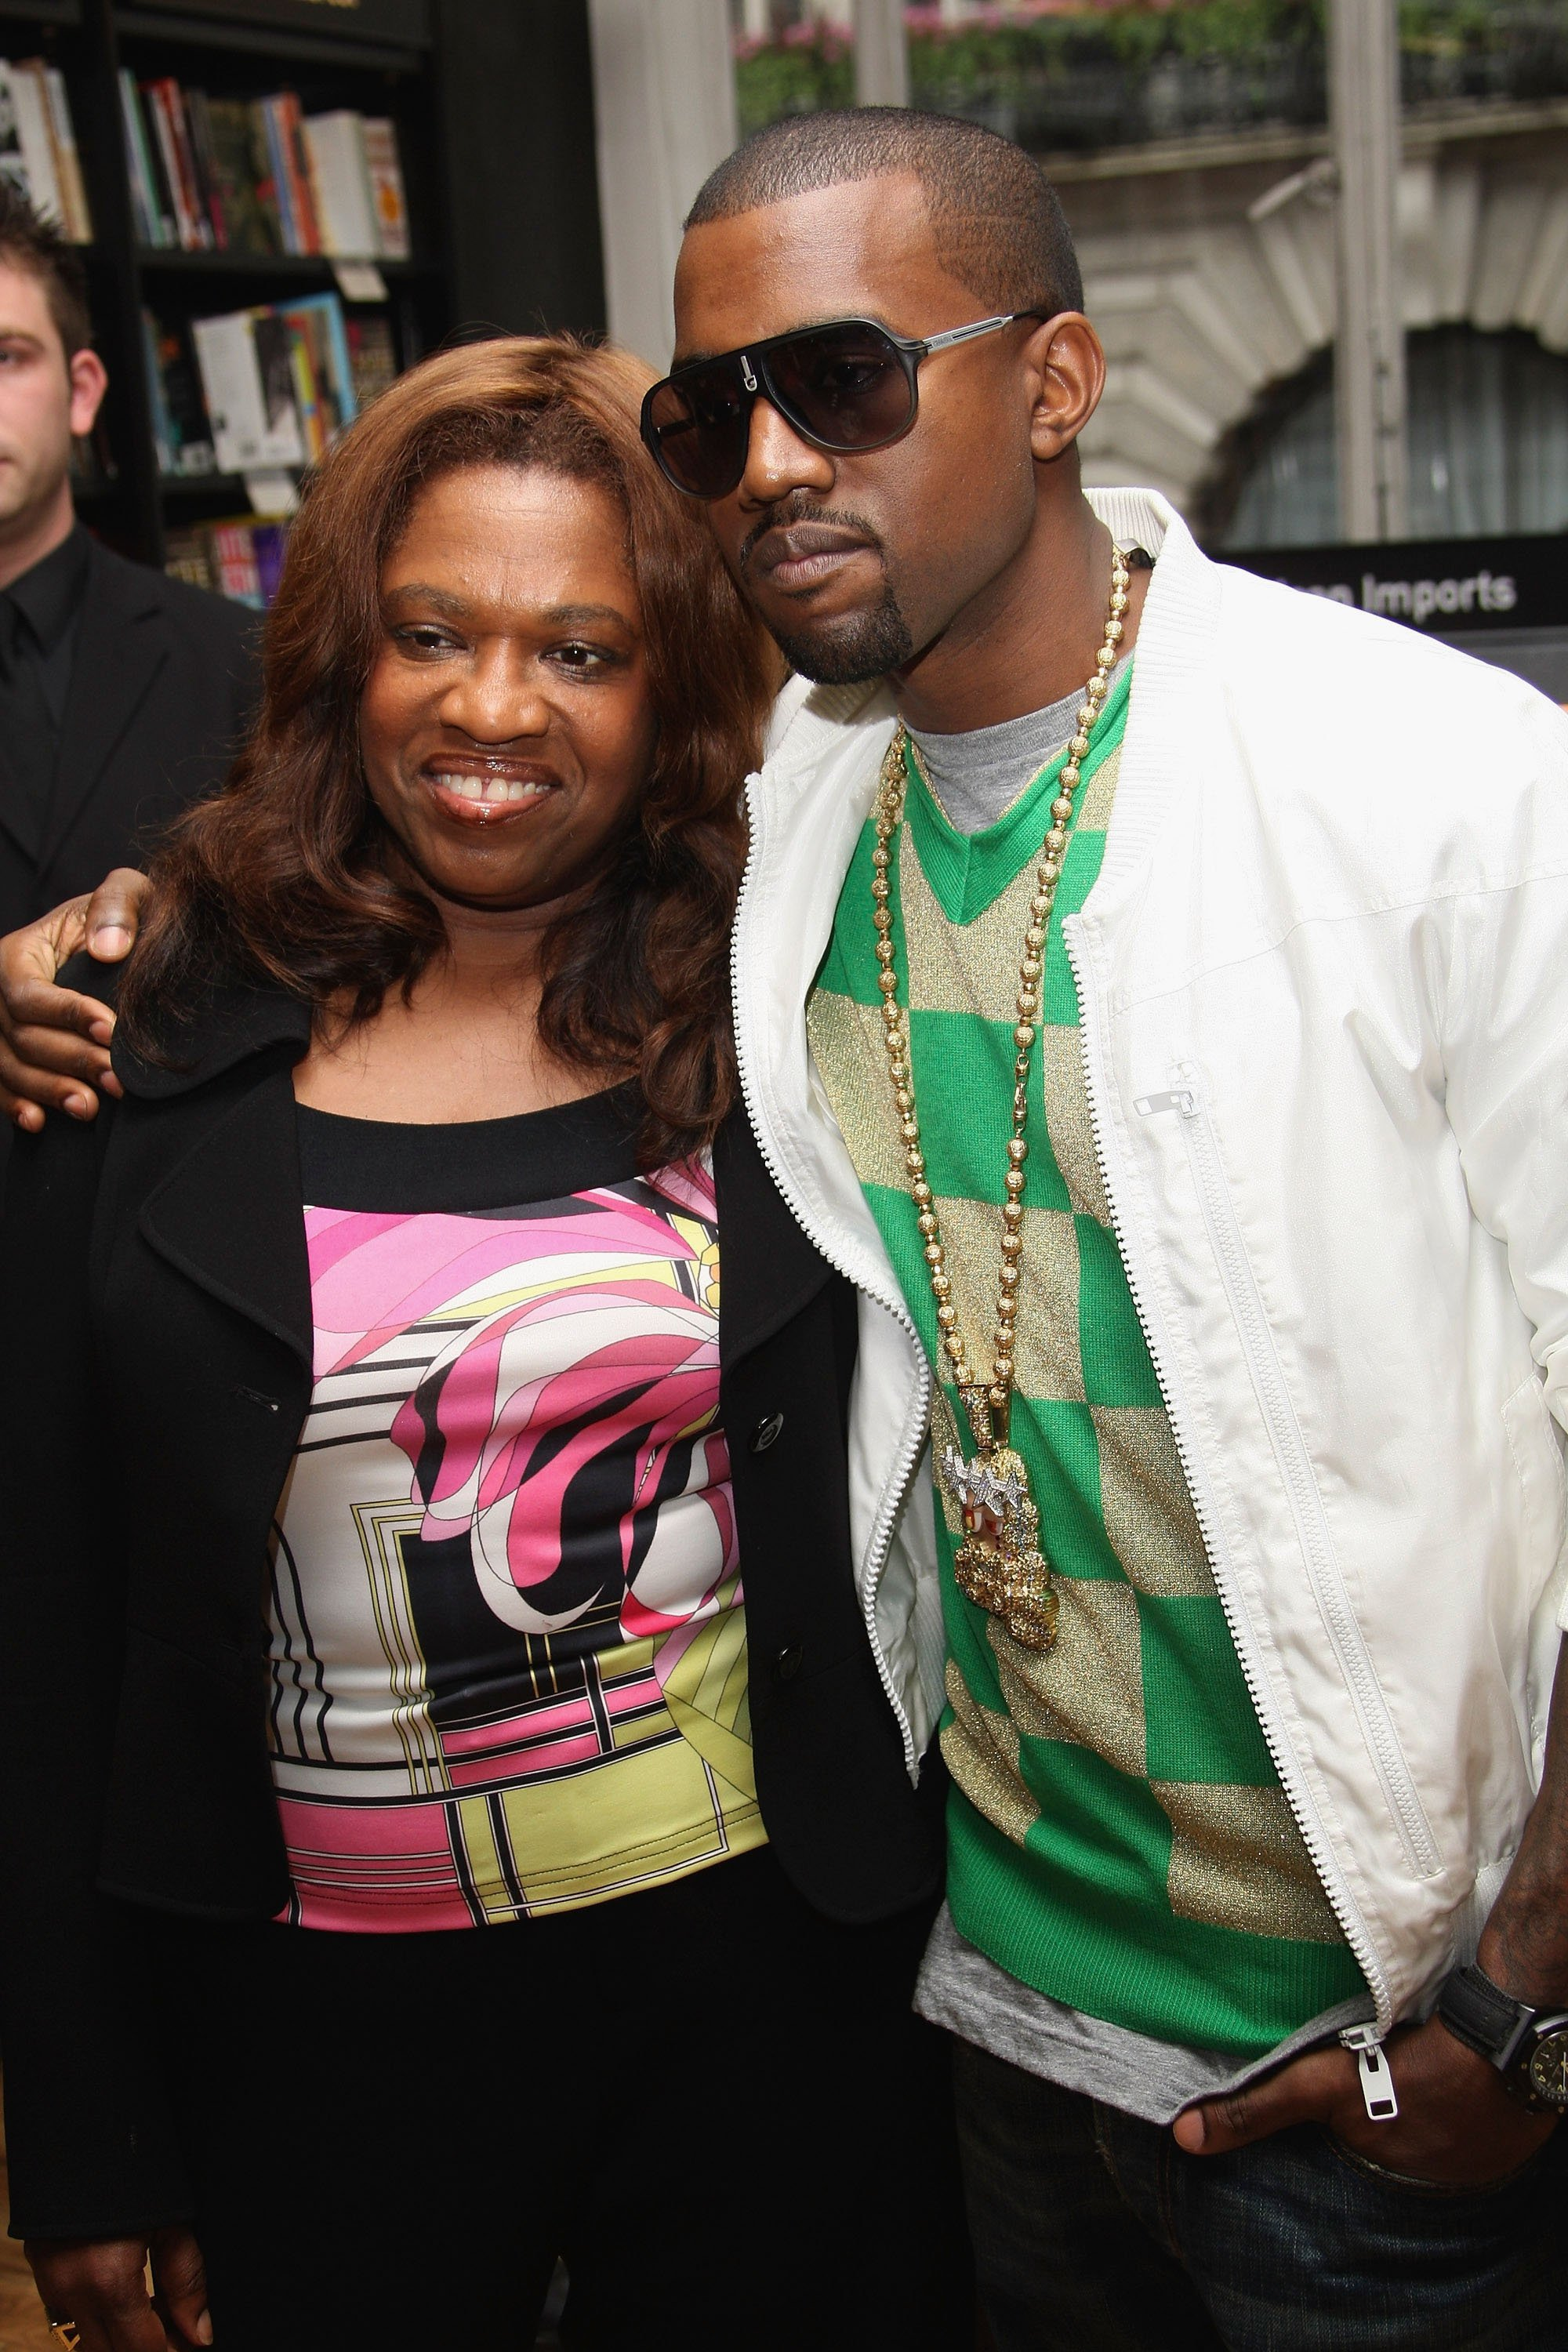 Kanye West and Donda prior to signing copies of 'Raising Kanye: Life Lessons From The Mother Of A Hip-Hop Superstar' at Waterstones on June 30, 2007   Photo: GettyImages